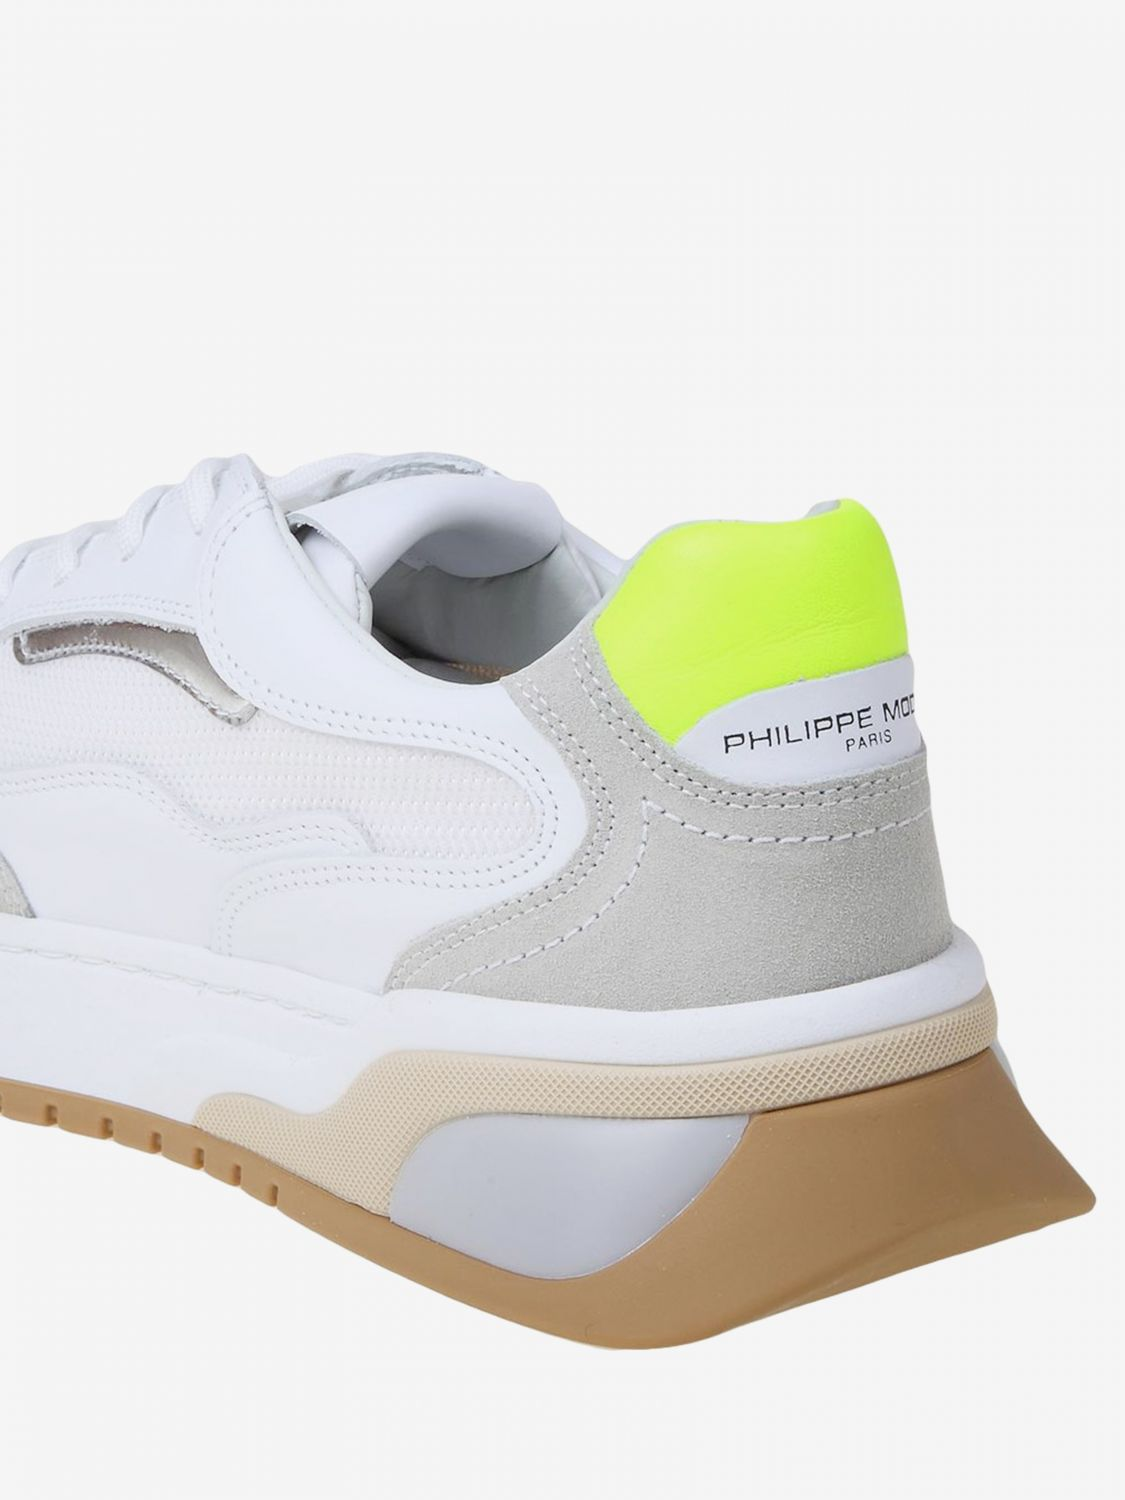 Baskets homme Philippe Model blanc 4